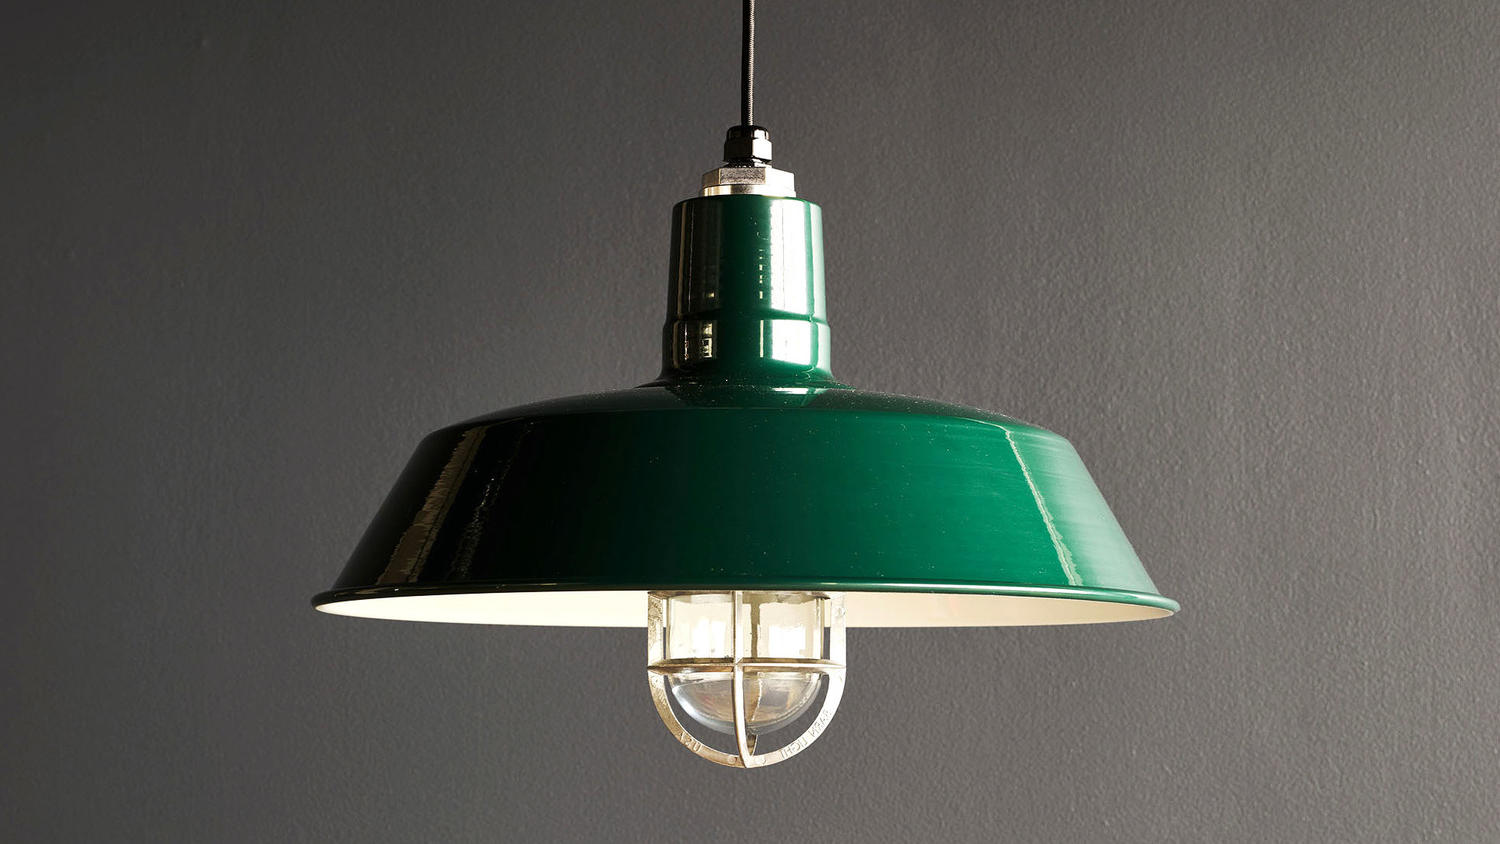 Big Deal On Willa Arlo Interiors Jenkins 1-Light Single Bell regarding Popular Giacinta 1-Light Single Bell Pendants